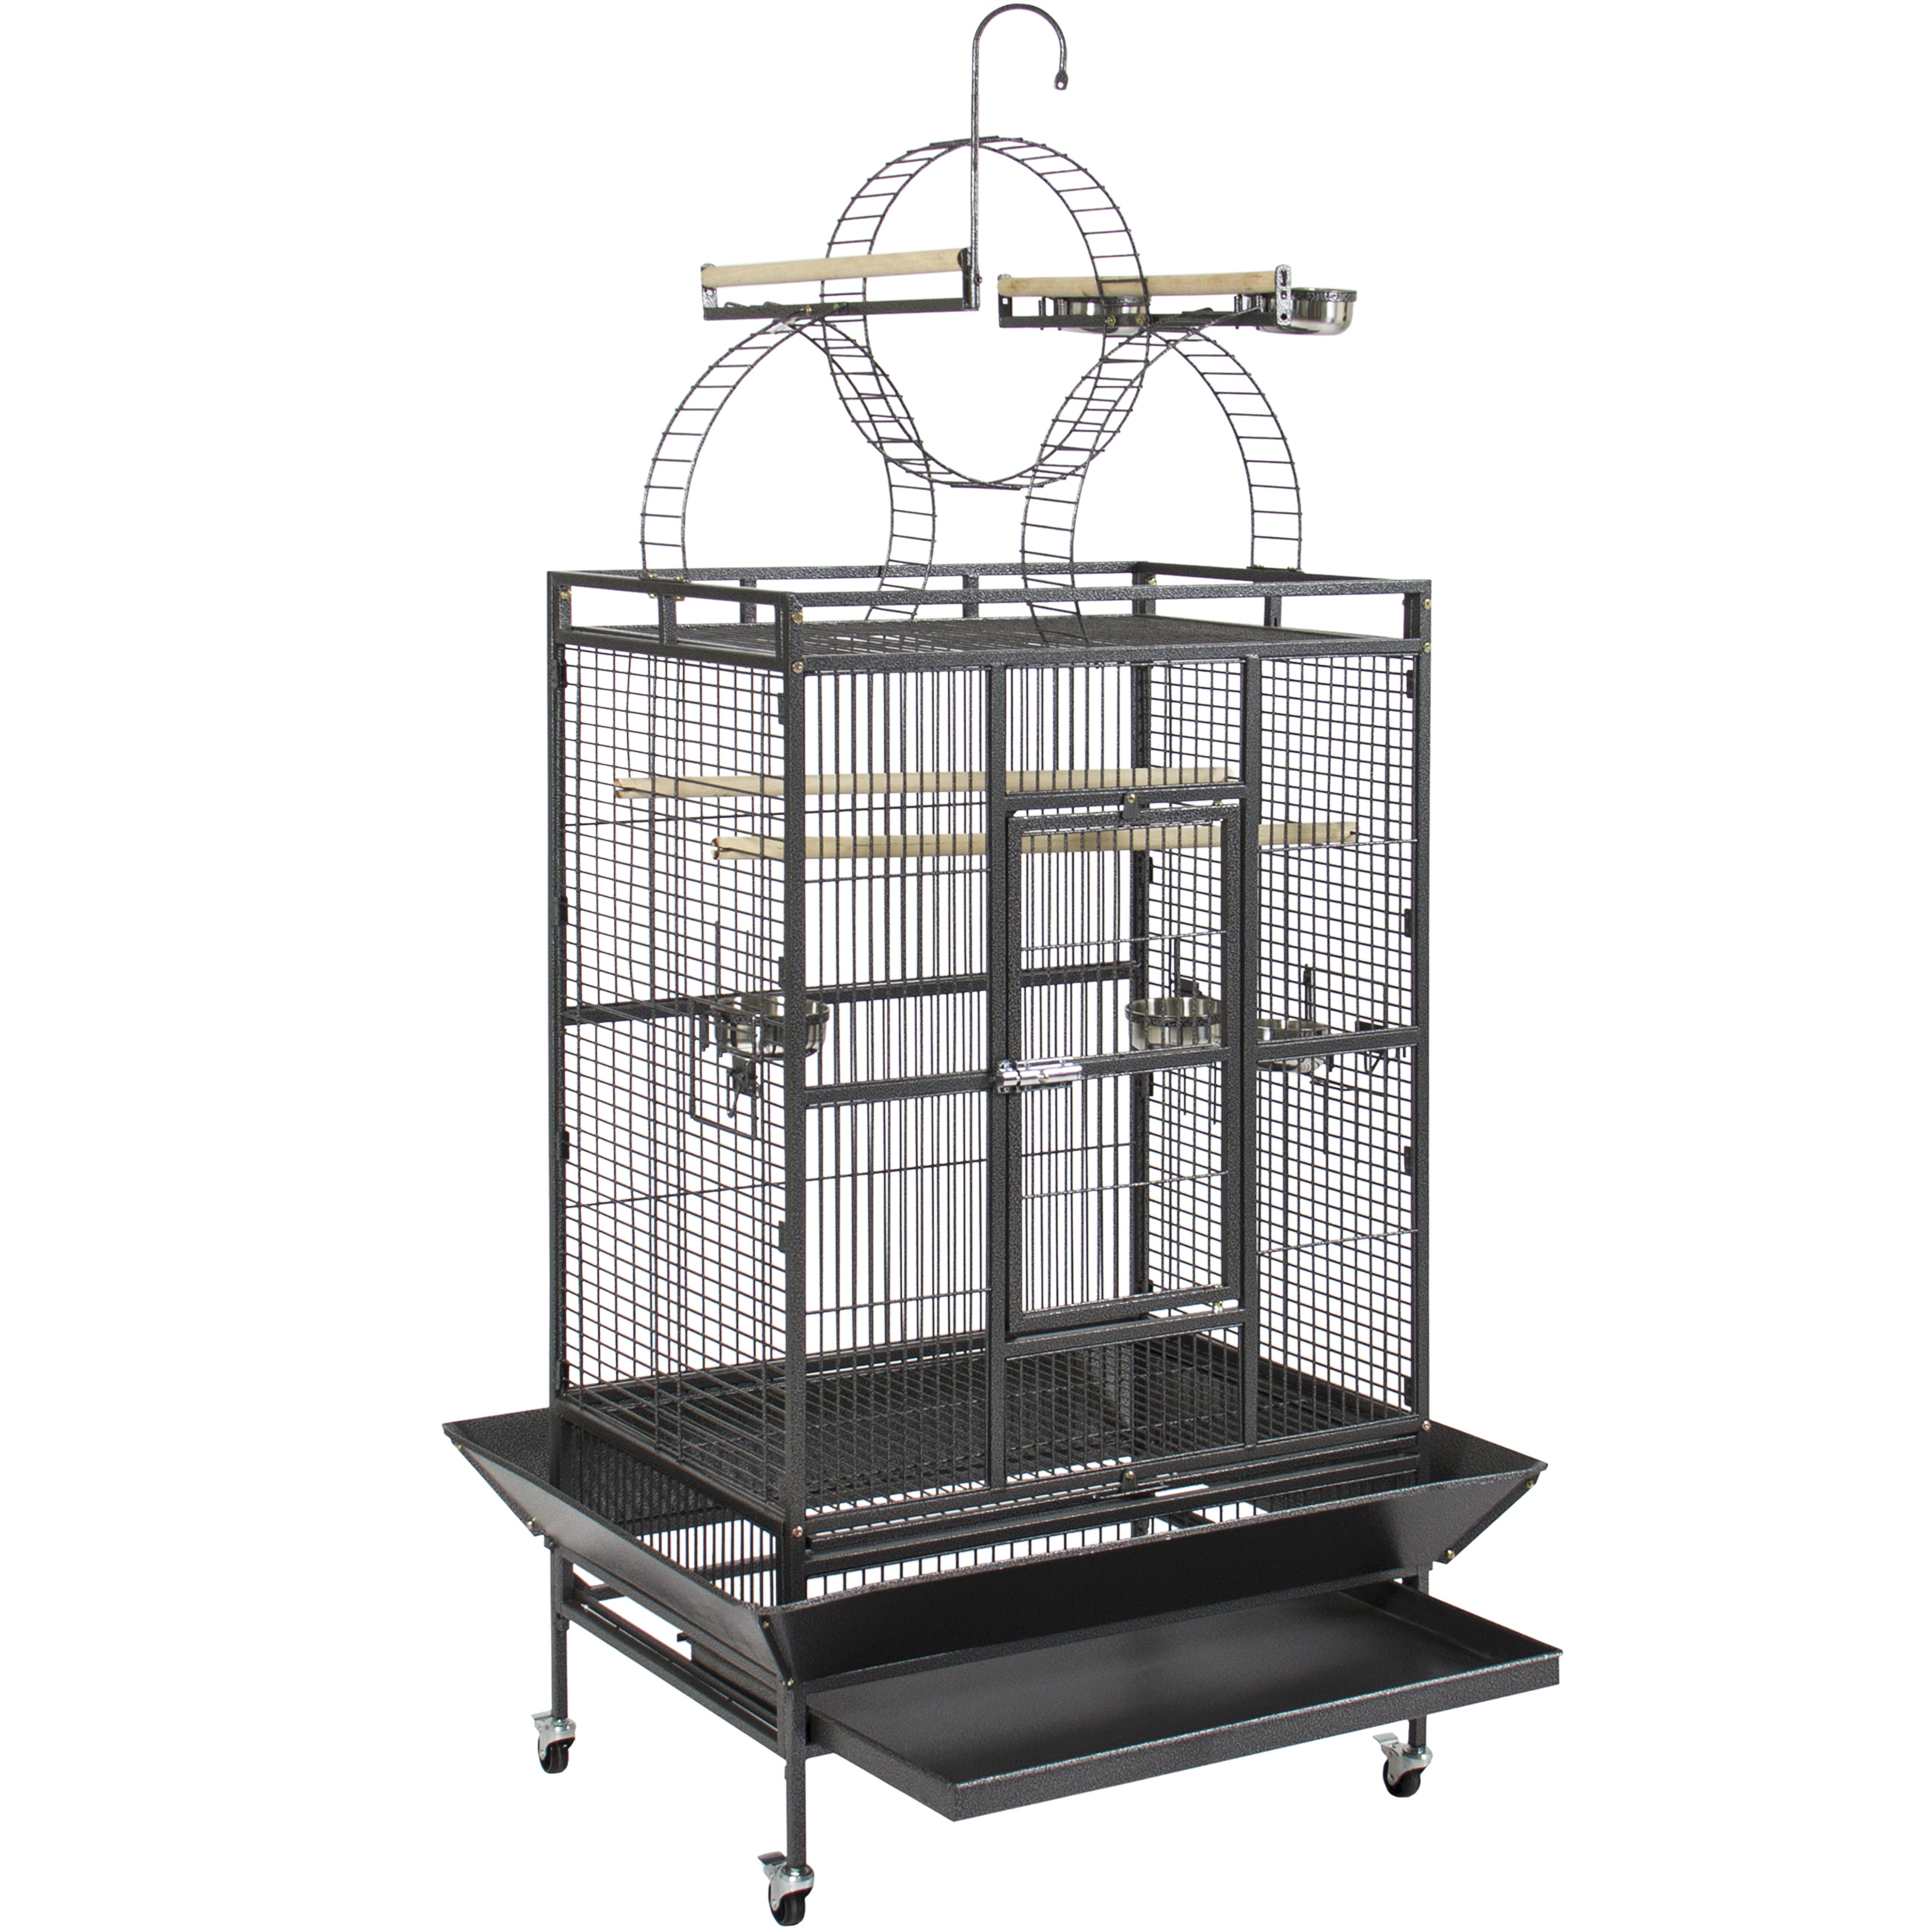 Best Choice Products Large Parrot Bird Flight Finch Macaw Cage Pet Supply Aviary House w/ Free Toy - Black